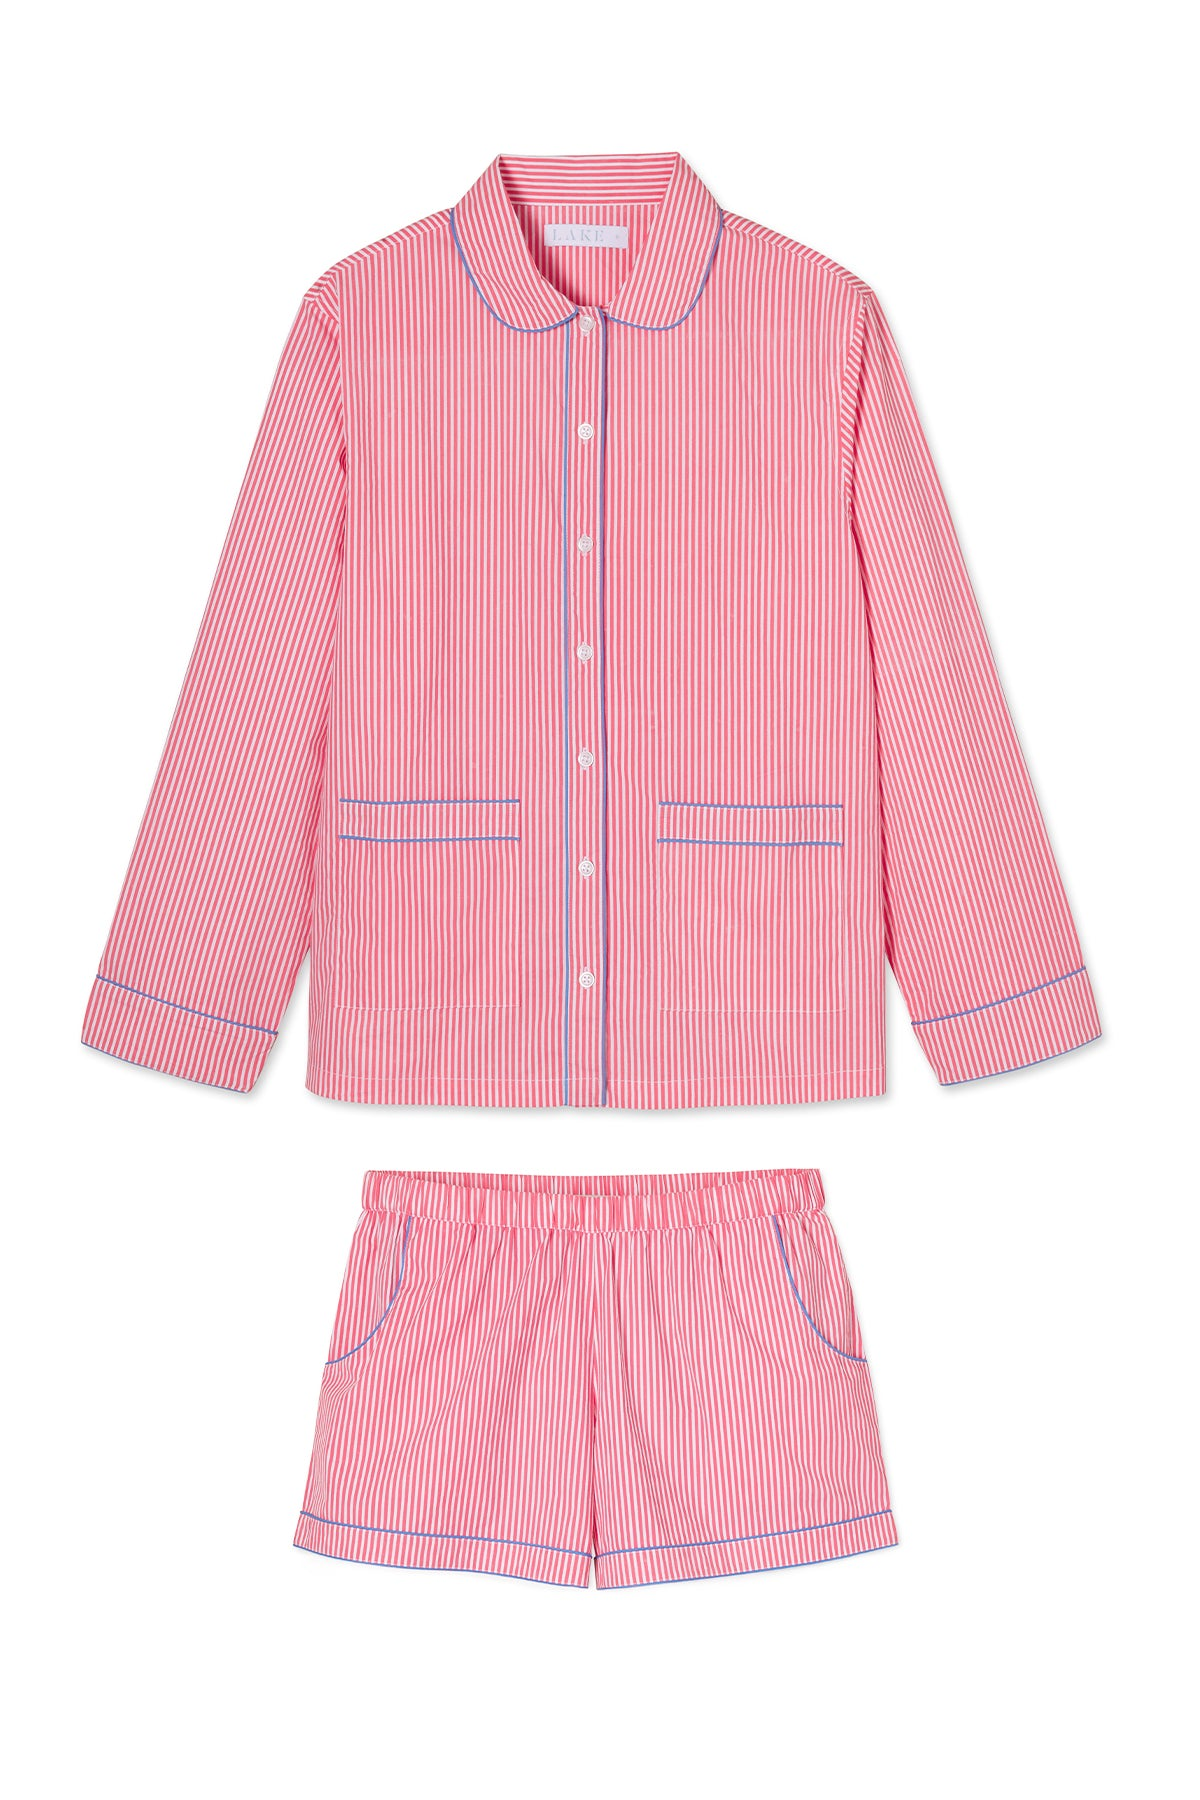 Poplin Piped Shorts Set in Picnic